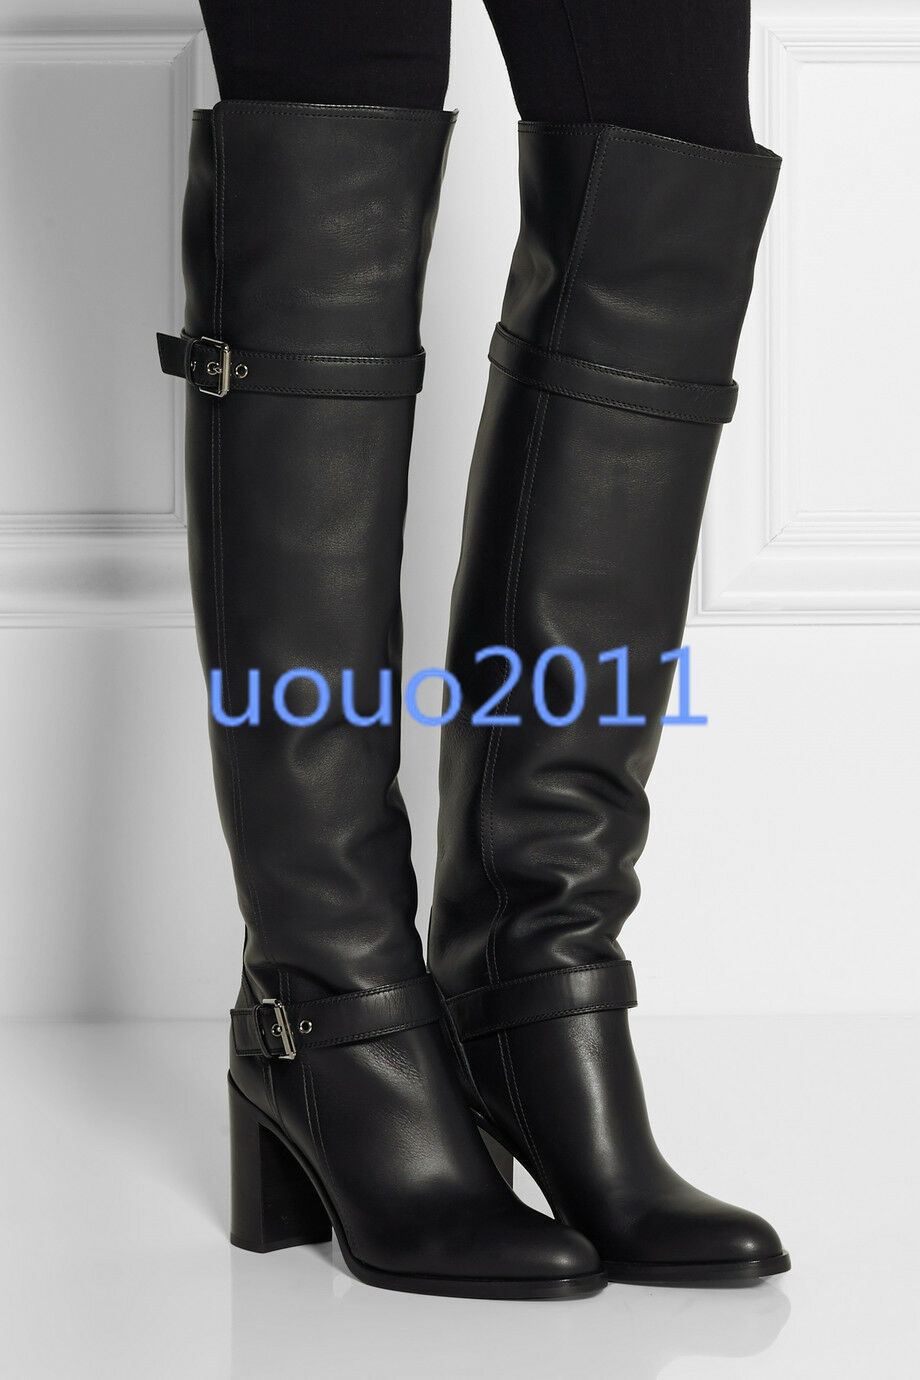 Size 4-10 Womens High Block Heel Pull on Leather Winter Over The Knee Boots New